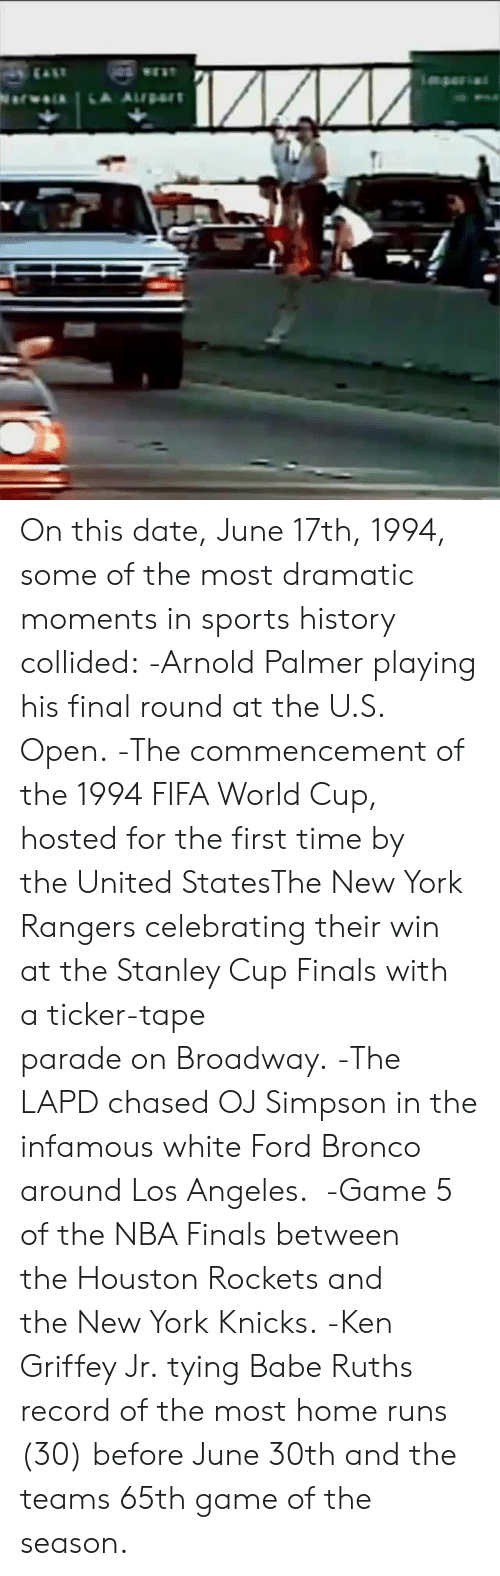 Fifa, Finals, and Houston Rockets: On this date, June 17th, 1994, some of the most dramatic moments in sports history collided:  -Arnold Palmer playing his final round at the U.S. Open.  -The commencement of the 1994 FIFA World Cup, hosted for the first time by the United StatesThe New York Rangers celebrating their win at the Stanley Cup Finals with a ticker-tape parade on Broadway.  -The LAPD chased OJ Simpson in the infamous white Ford Bronco around Los Angeles.   -Game 5 of the NBA Finals between the Houston Rockets and the New York Knicks.  -Ken Griffey Jr. tying Babe Ruths record of the most home runs (30) before June 30th and the teams 65th game of the season.